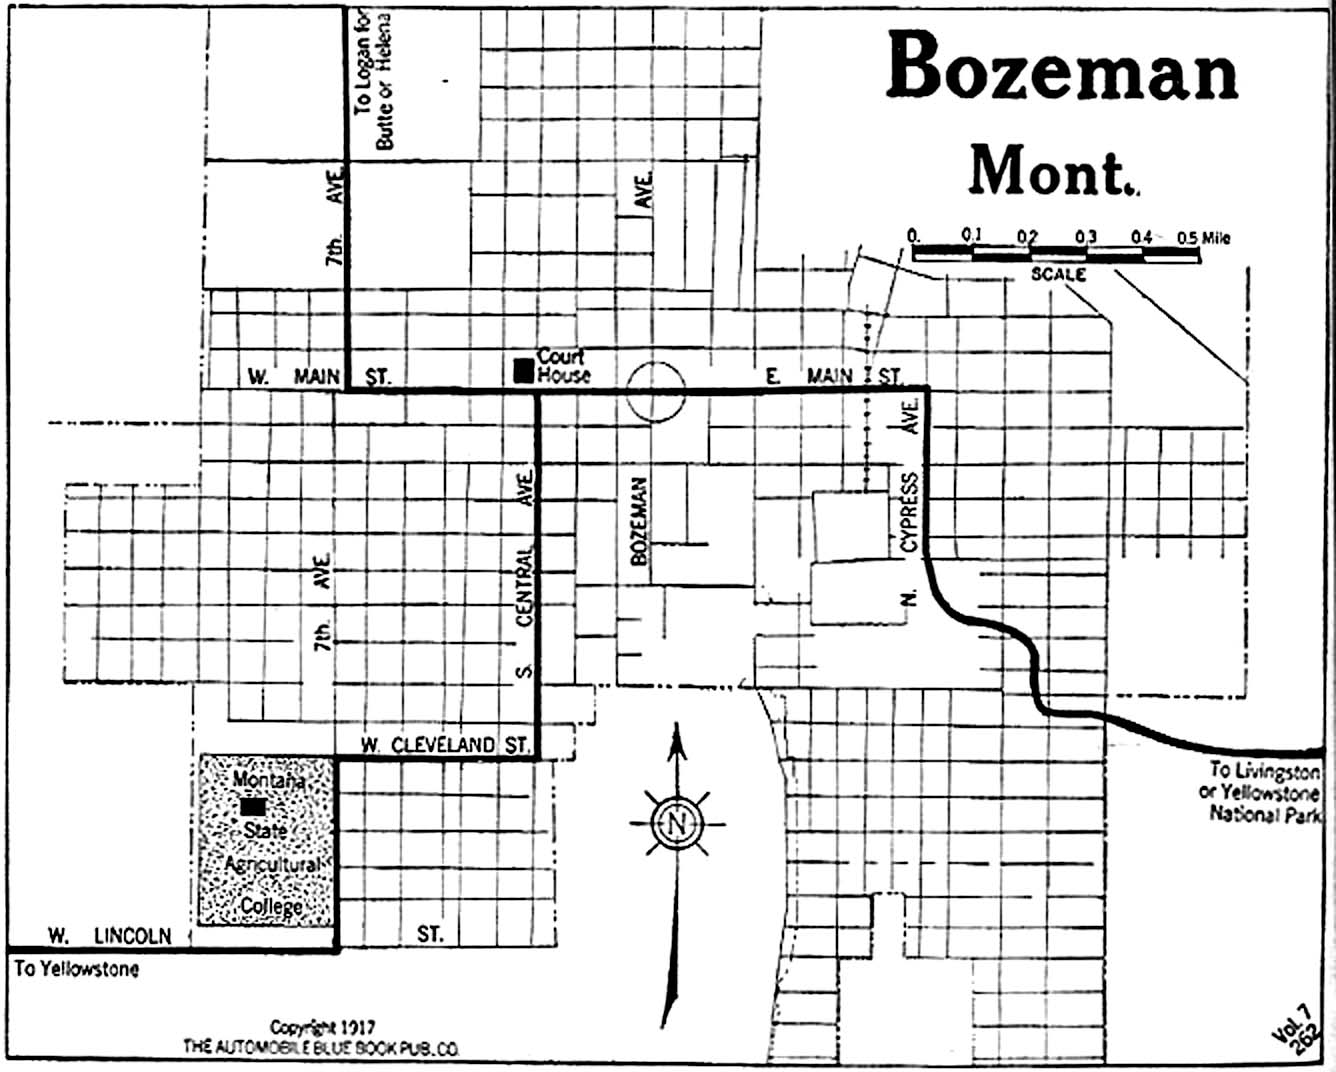 Montana City Maps At AmericanRoadscom - Montana cities map